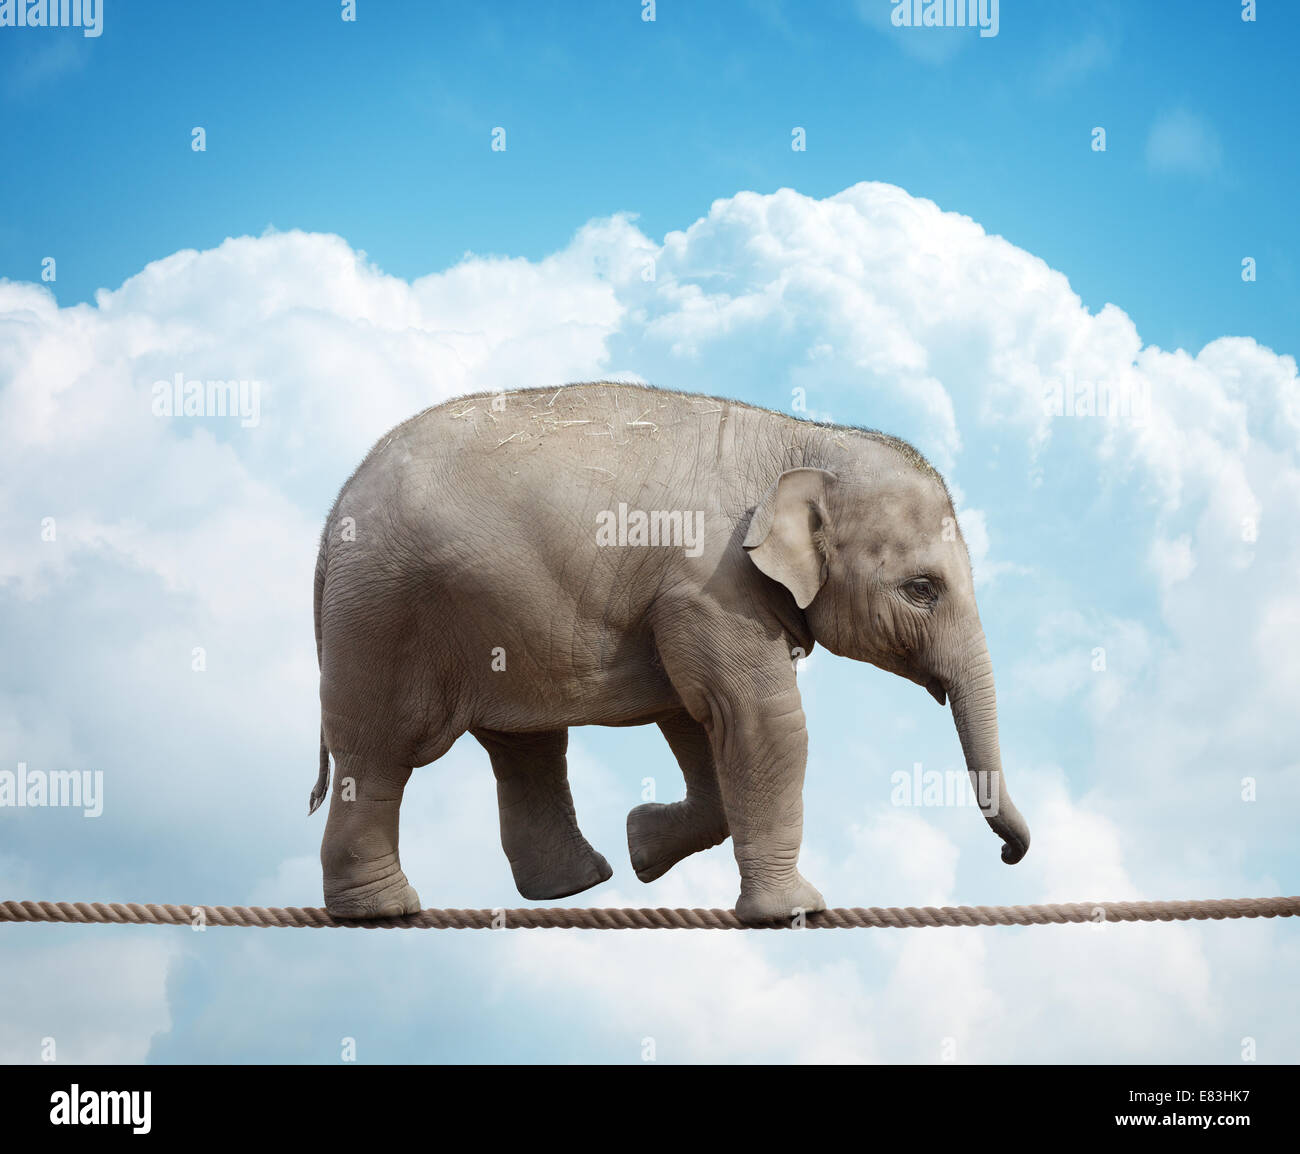 Elephant calf on tightrope - Stock Image